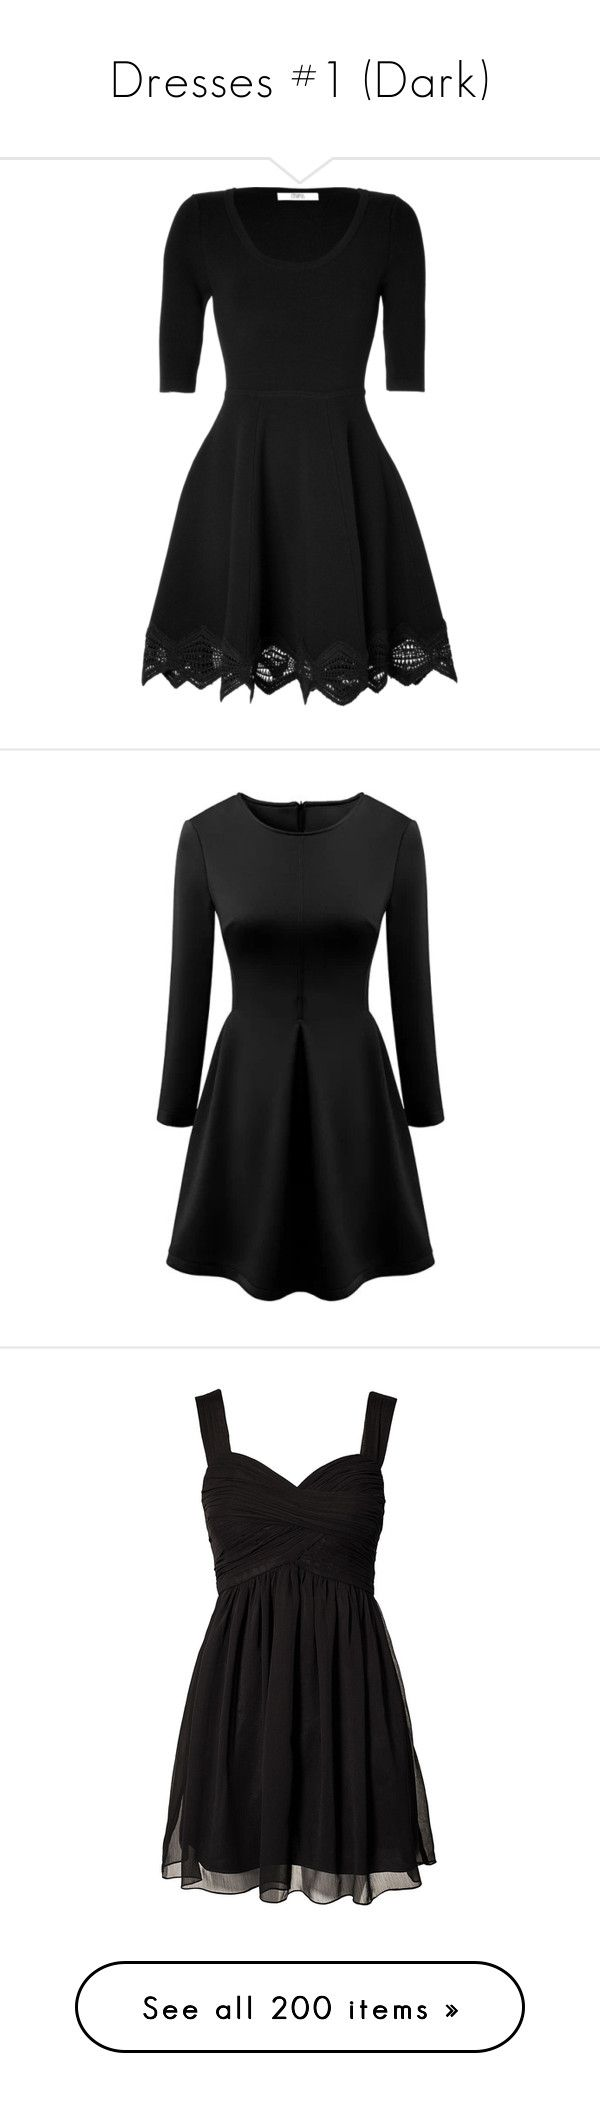 """Dresses #1 (Dark)"" by angiemx ❤ liked on Polyvore featuring dresses, vestidos, short dresses, black dresses, mini dress, sheath dress, elbow sleeve dress, zig zag dress, half sleeve dresses and robes"